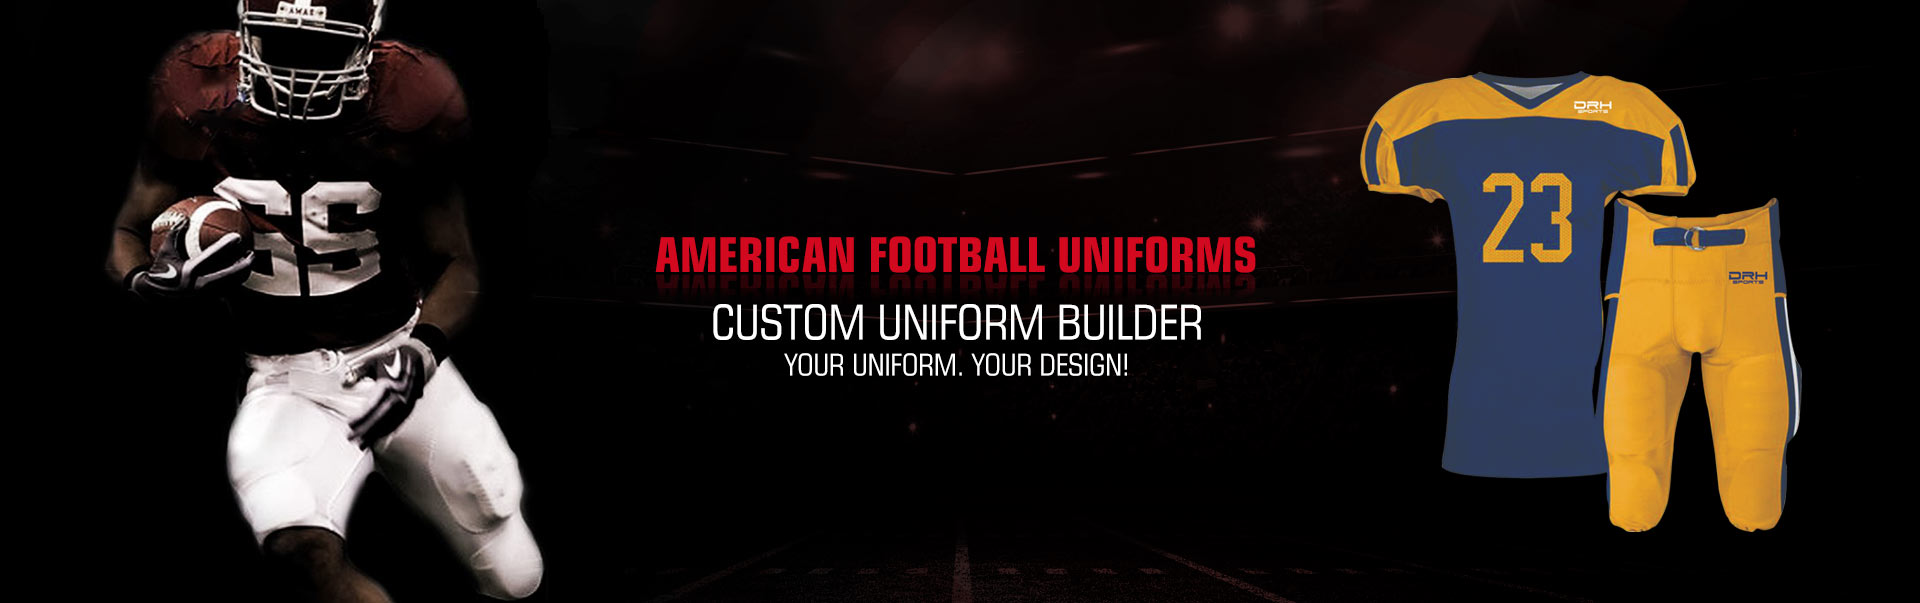 American Football Uniform Wholesaler, Suppliers in Tourcoing